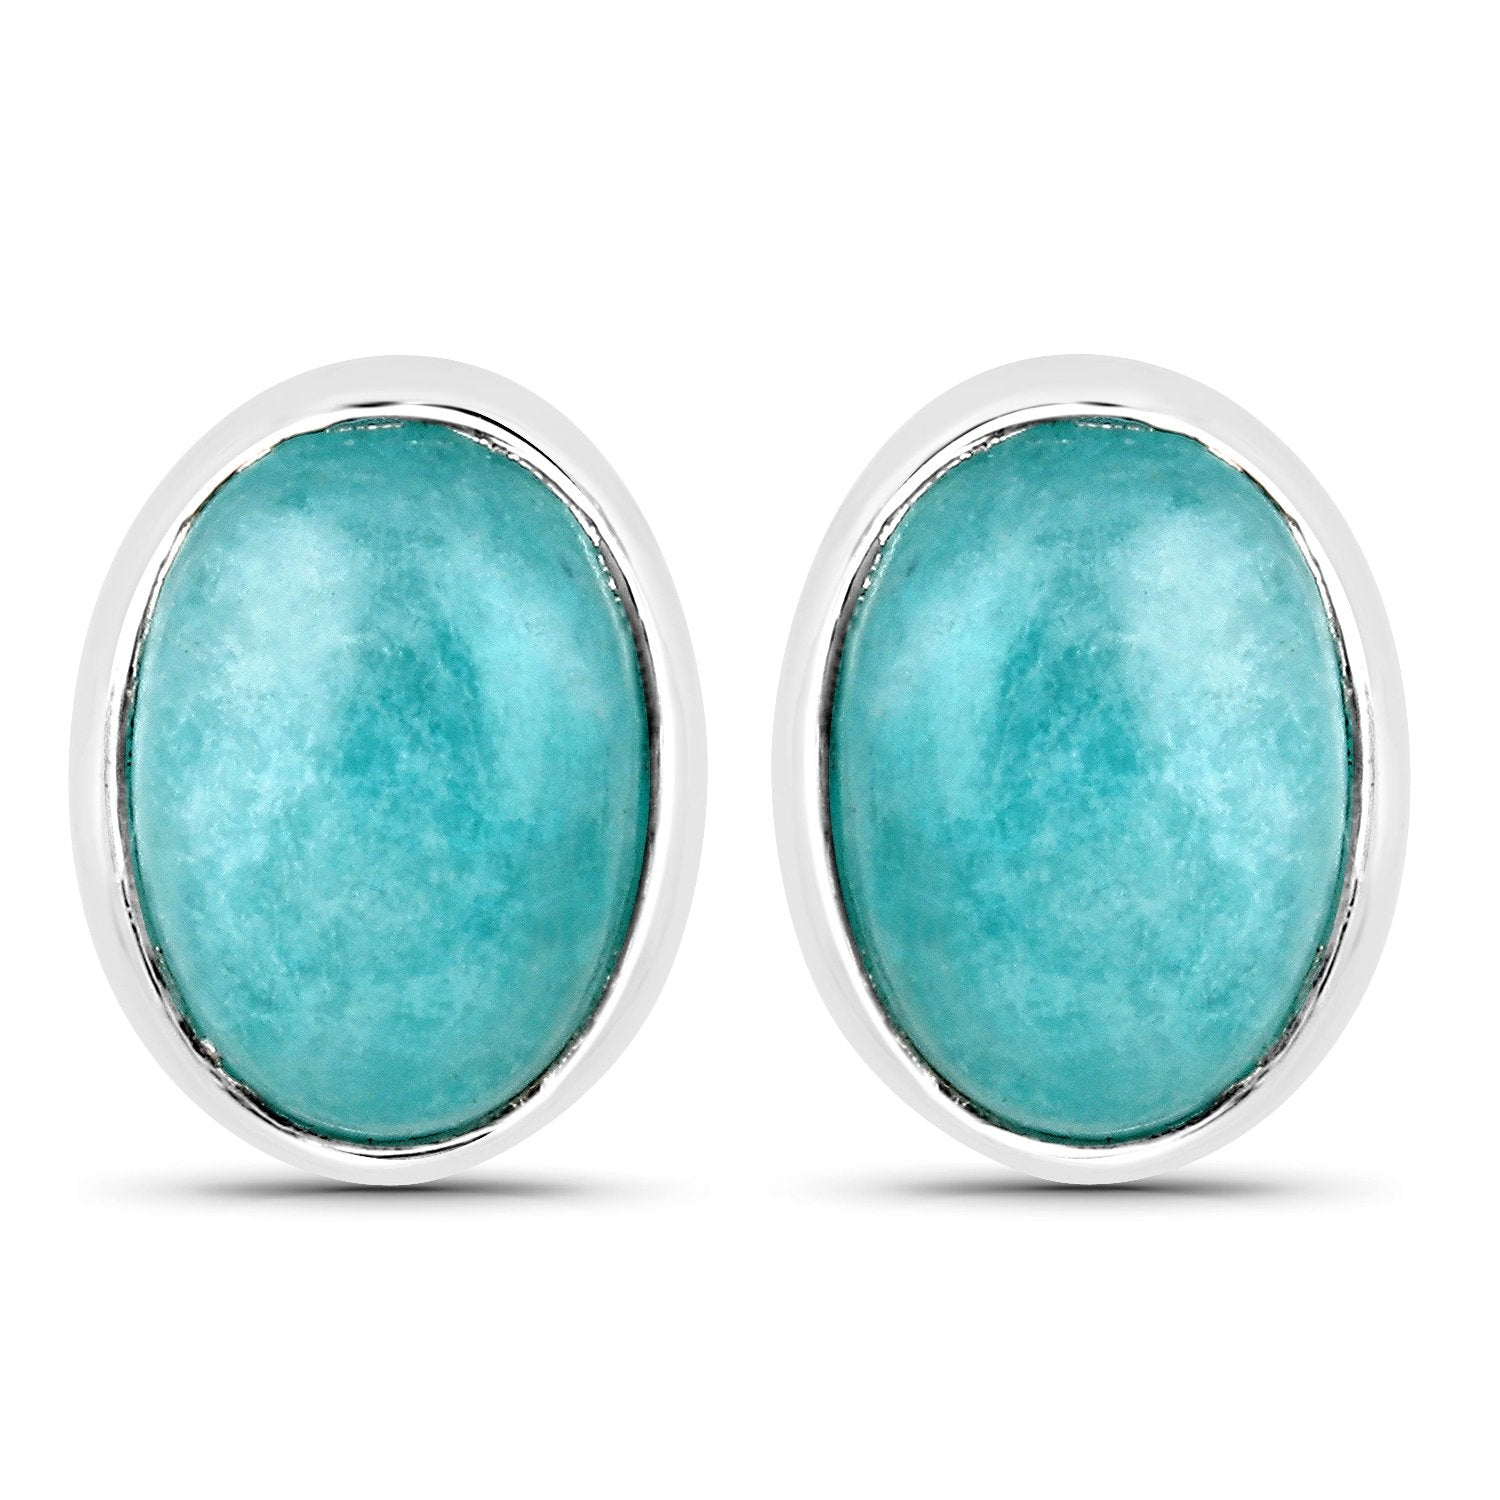 LoveHuang 1.53 Carats Genuine Amazonite Oval Stud Earrings Solid .925 Sterling Silver With Rhodium Plating